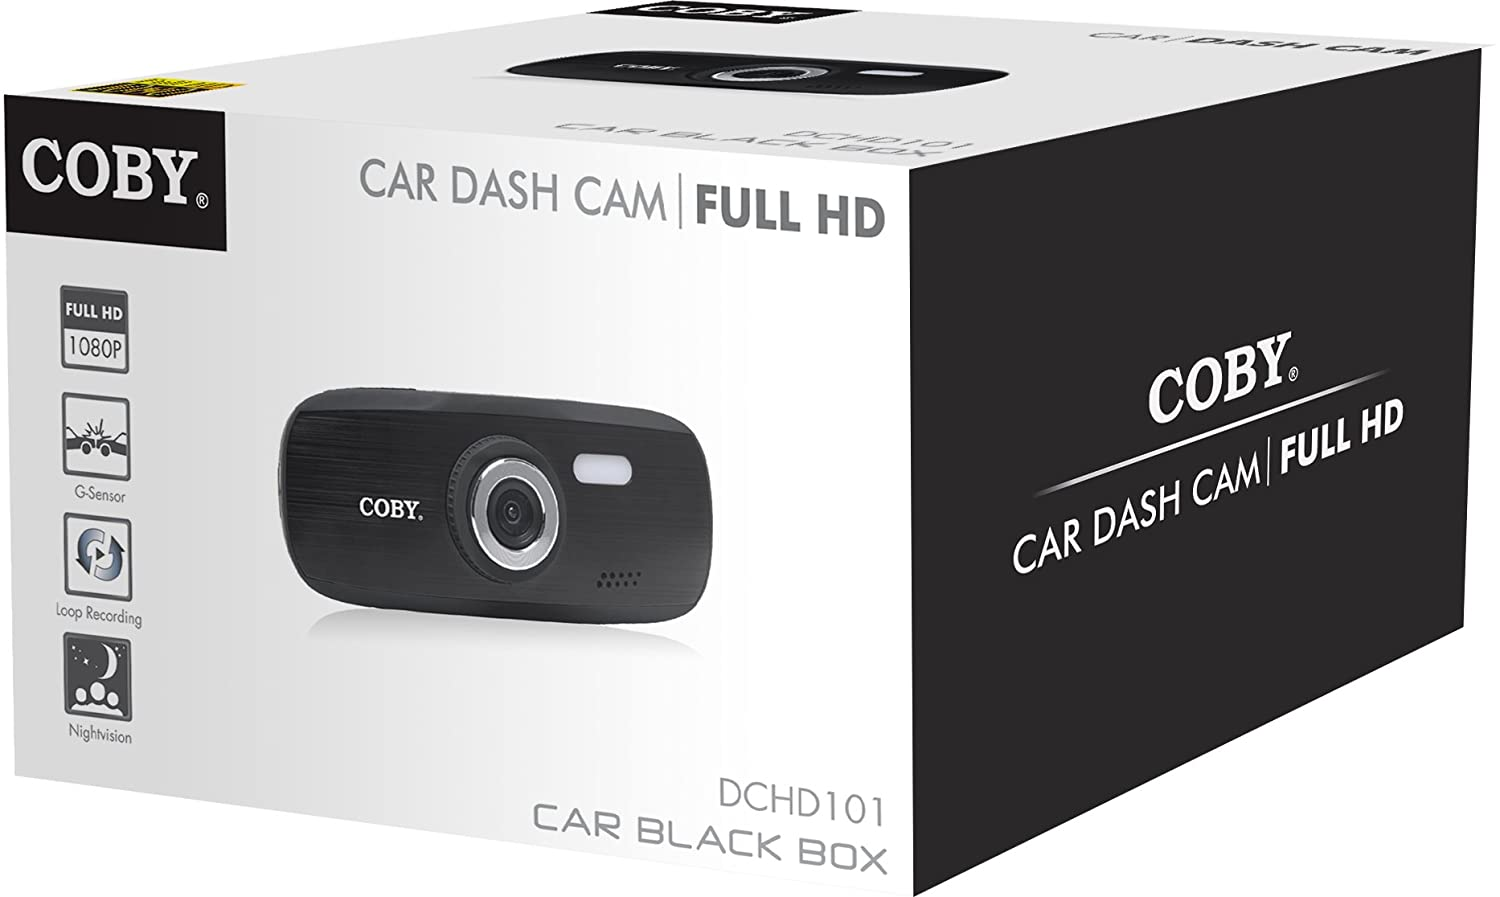 Amazon.com: Coby DCHD-101 4X Zoom 1080p Full HD Car Dash Cam and DVR Box (Black): Car Electronics